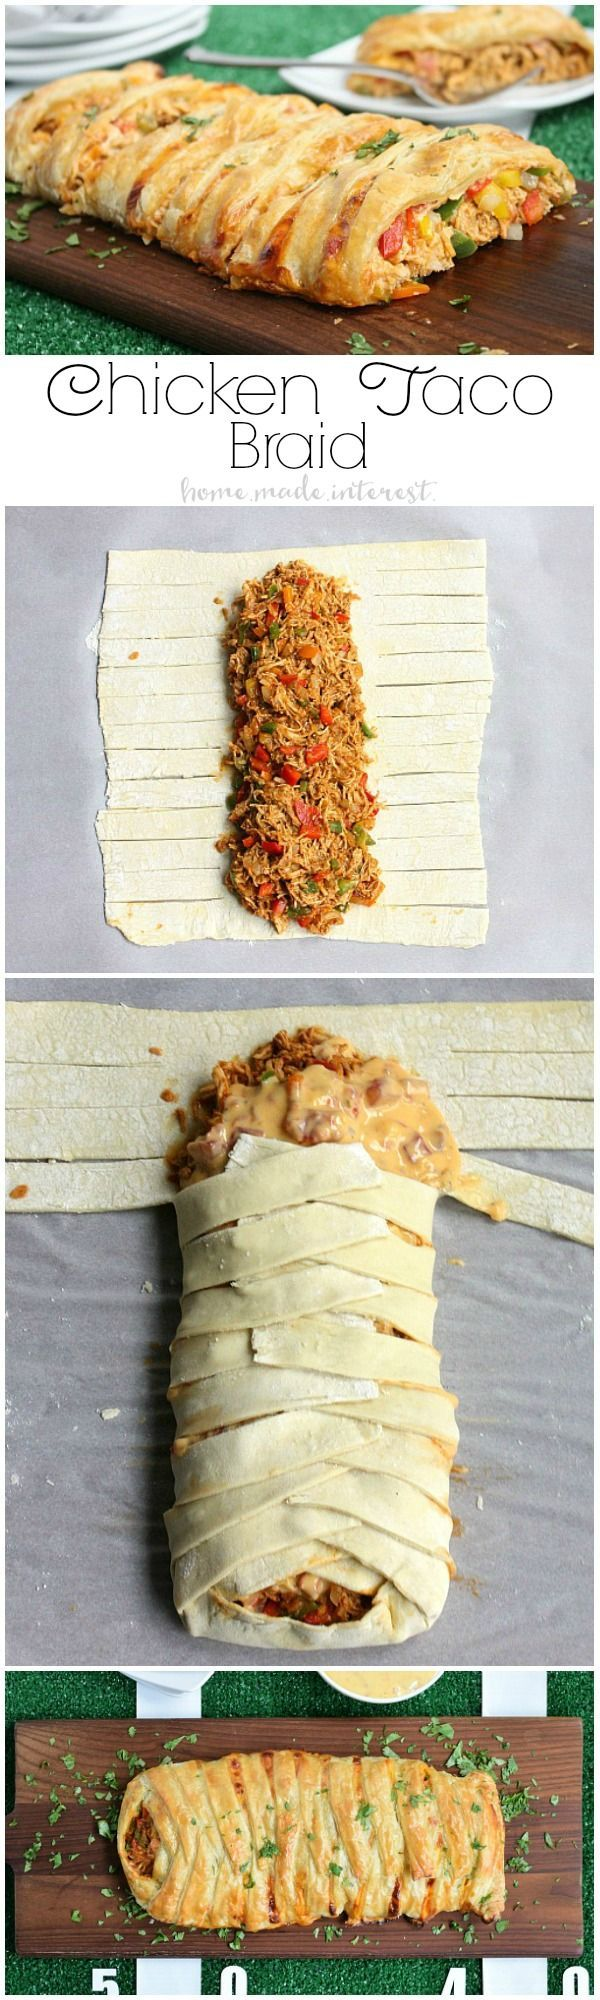 Shredded chicken and cheesy RO*TEL dip braided into a sheet of puff pastry and baked into a delicious chicken taco braid that is the perfect game day recipe for friends and family. #YesYouCAN #ad (Cheese Casserole Taco Seasoning)